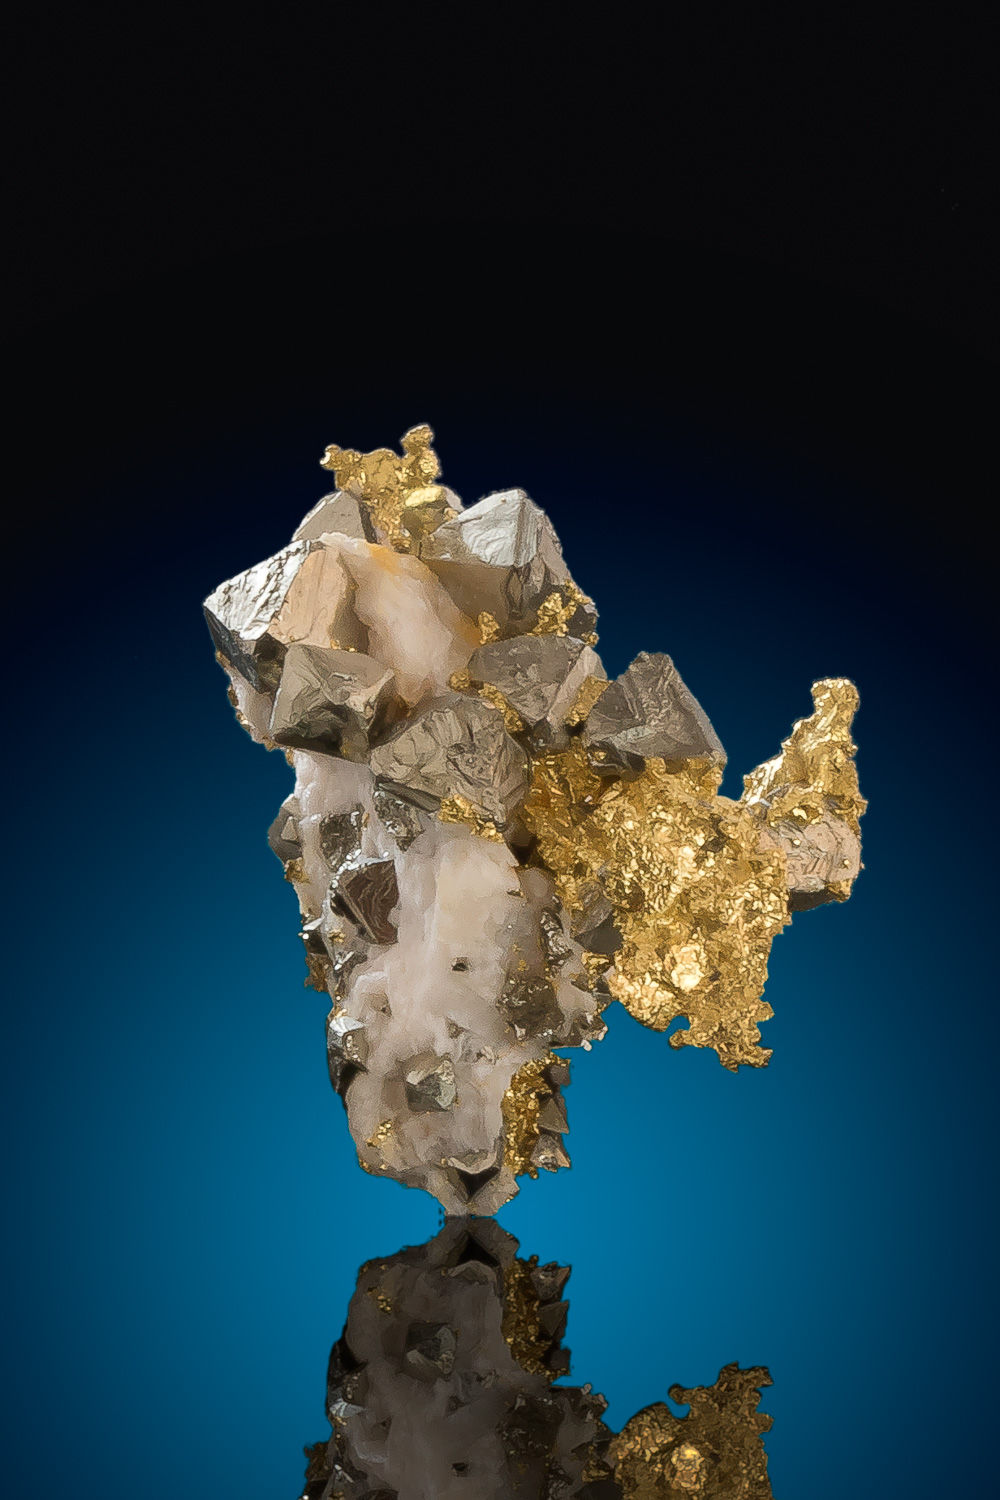 Fantastic and Rare - Crystalline Gold with Pyrite Crystals